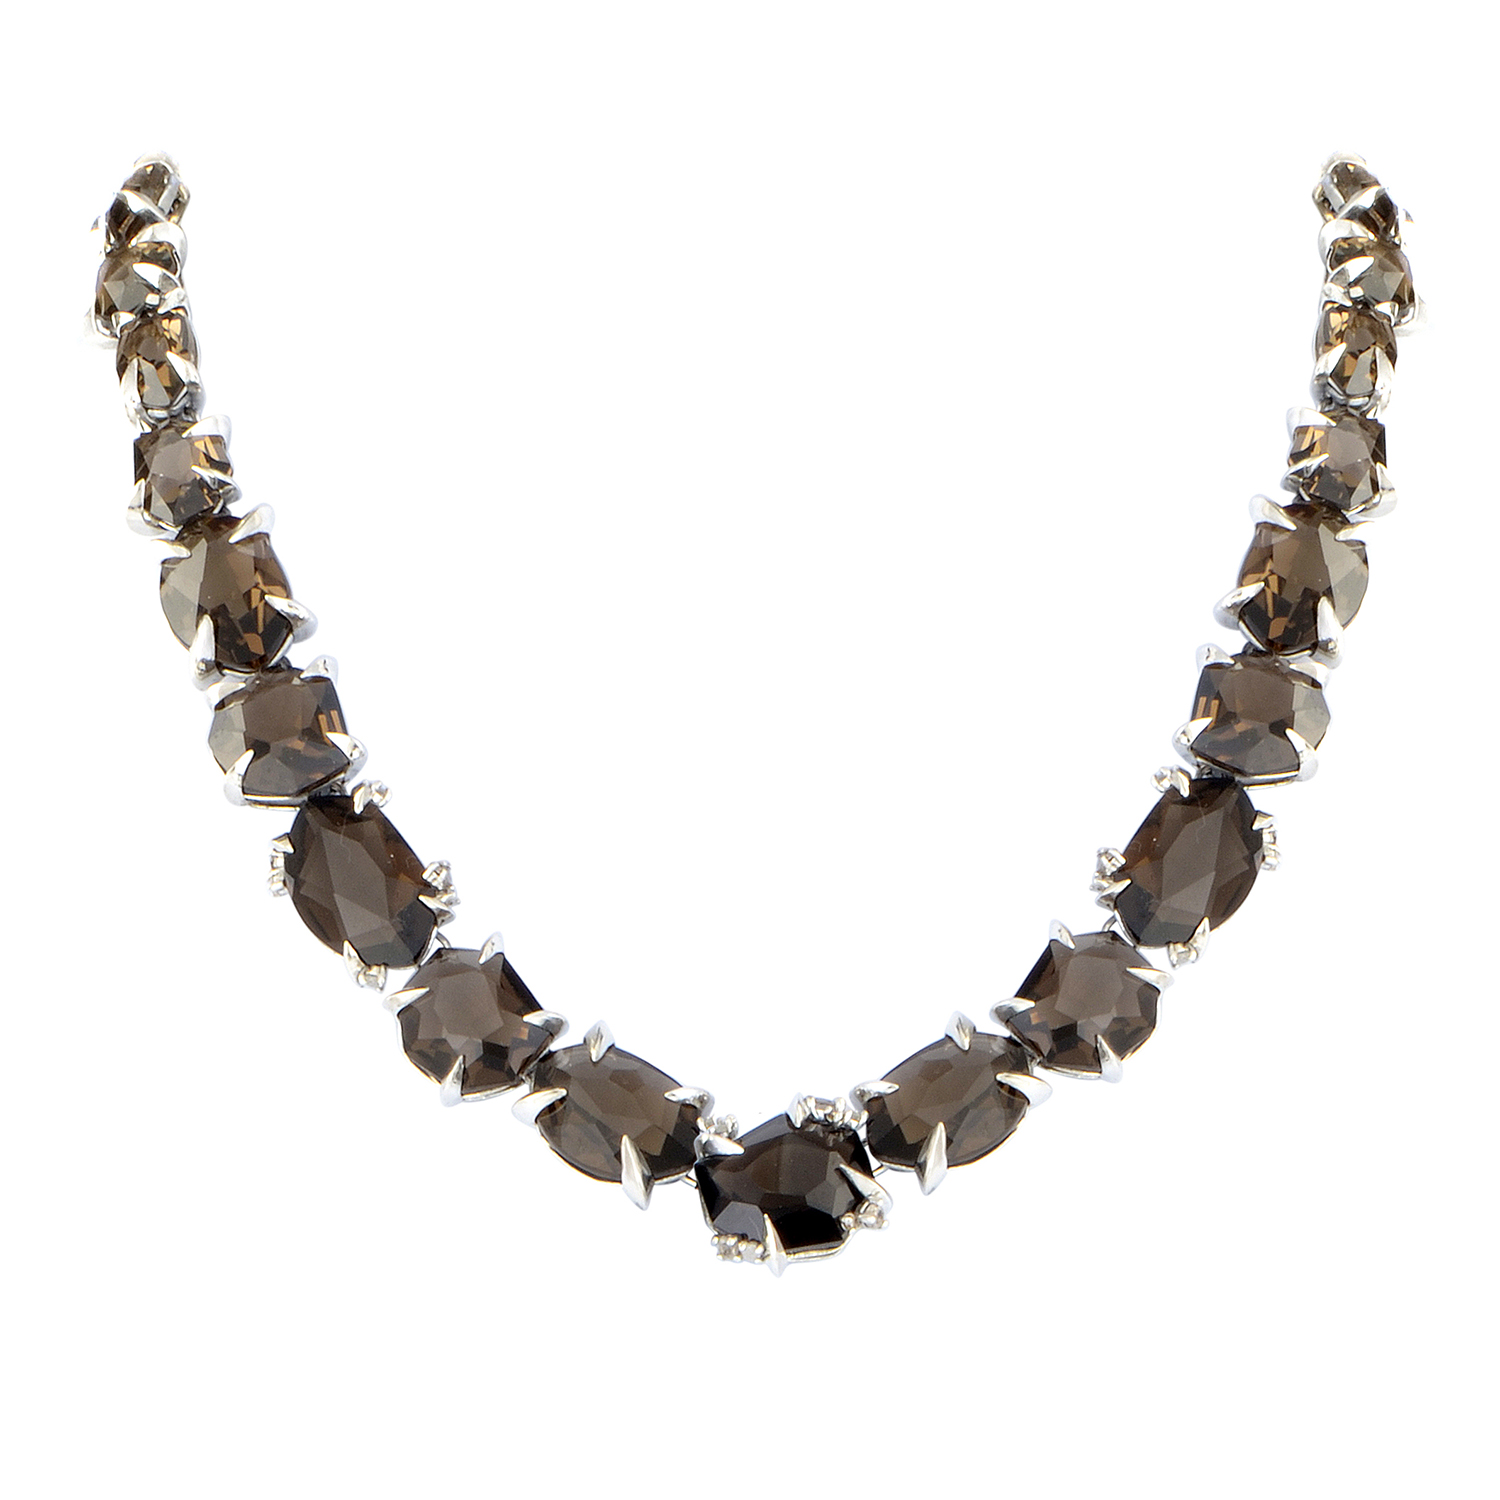 Women's Sterling Silver Diamond & Smoky Quartz Necklace FN33N036